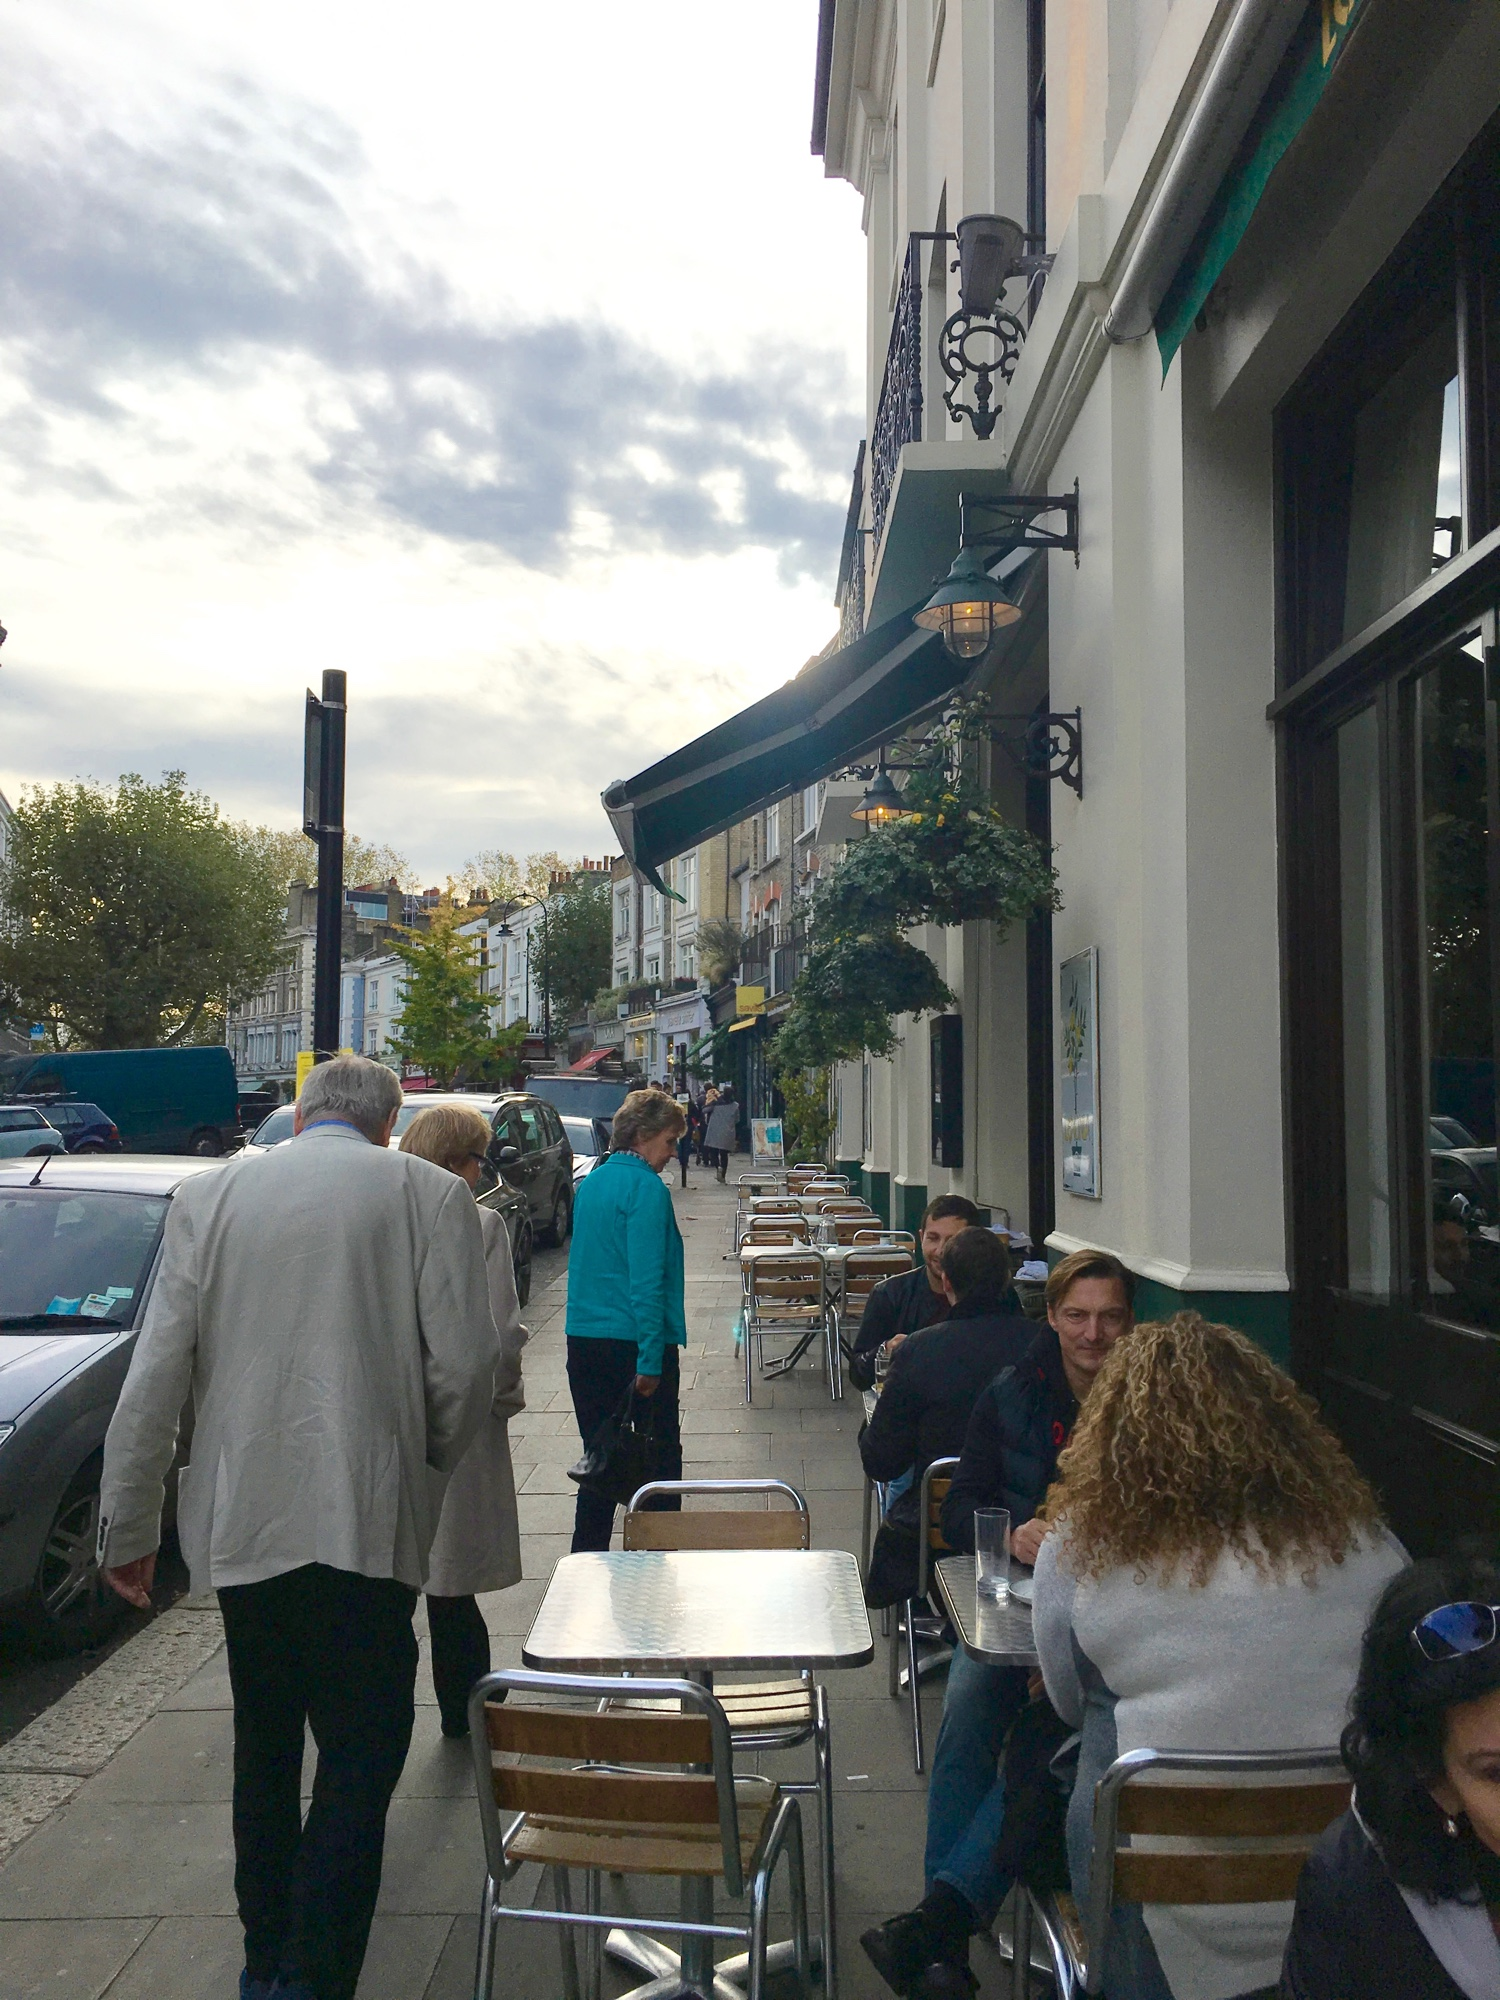 primrose_hill_london_vegan_travel_vegan_restaurants_in_london_manna.jpg